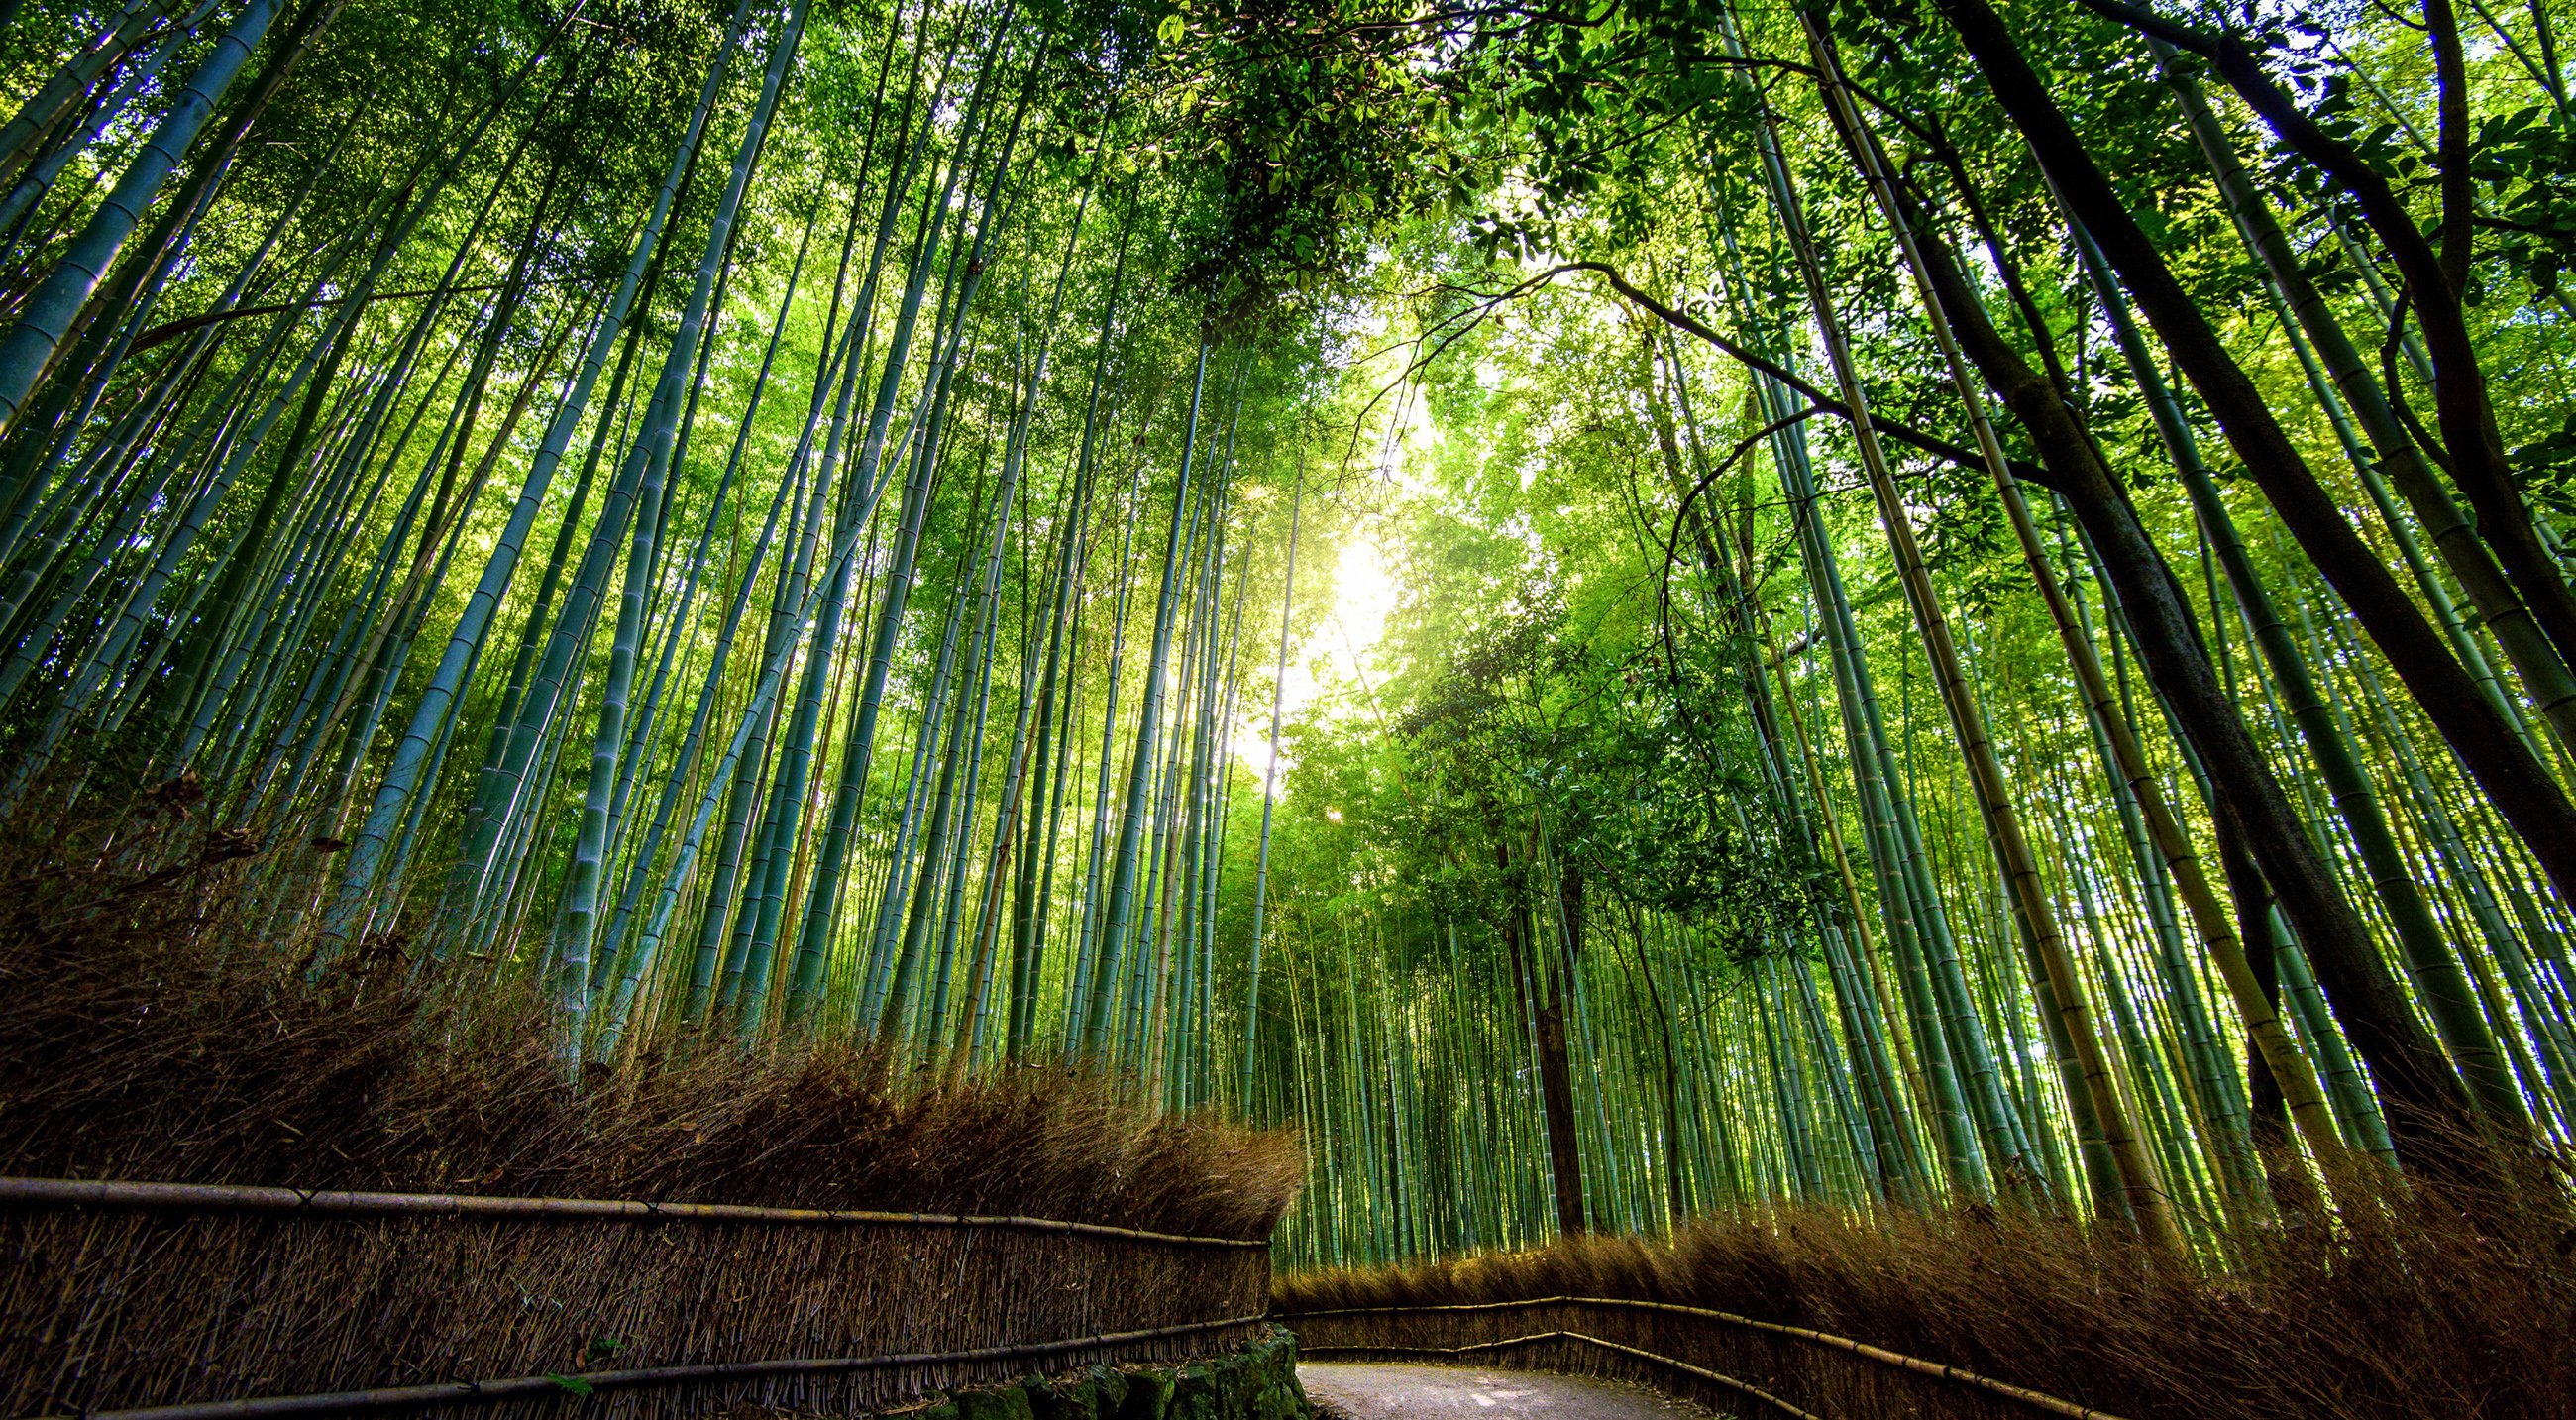 Bamboo forest 54615